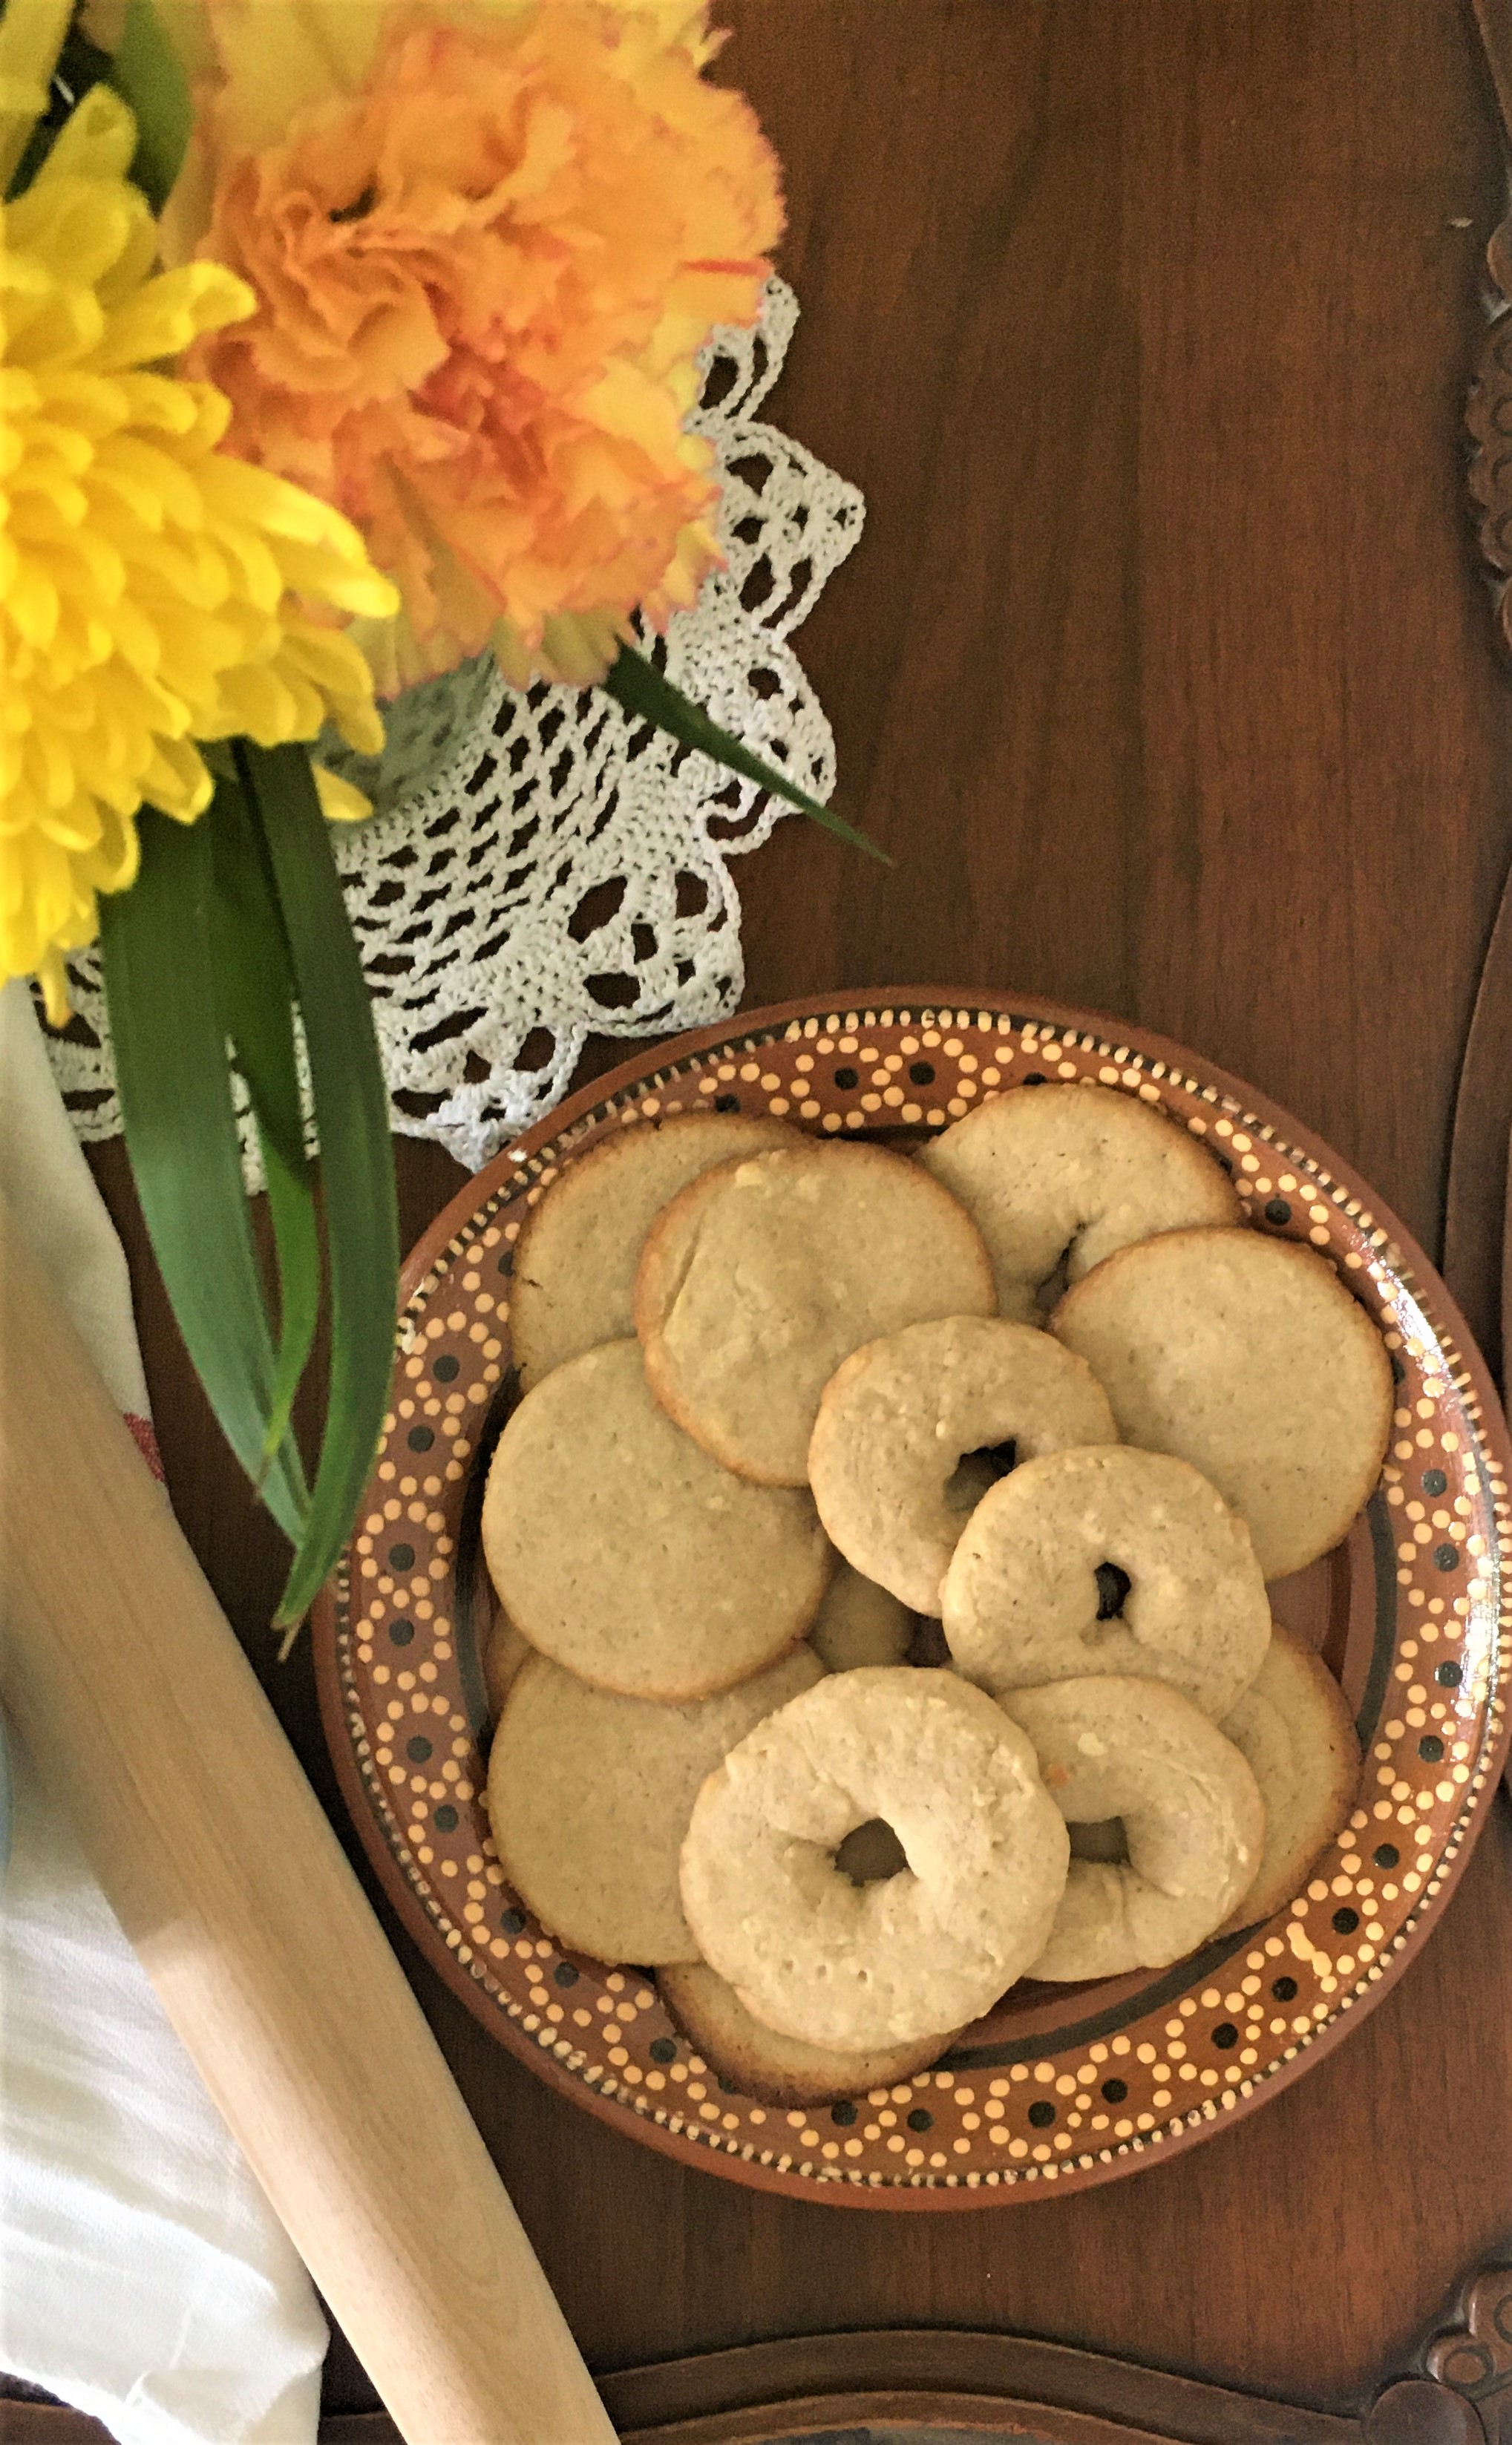 An image of Jumble cookies on a clay plate, sitting on a wooden table with orange & yellow flowers and a wooden rolling pin off to the side.